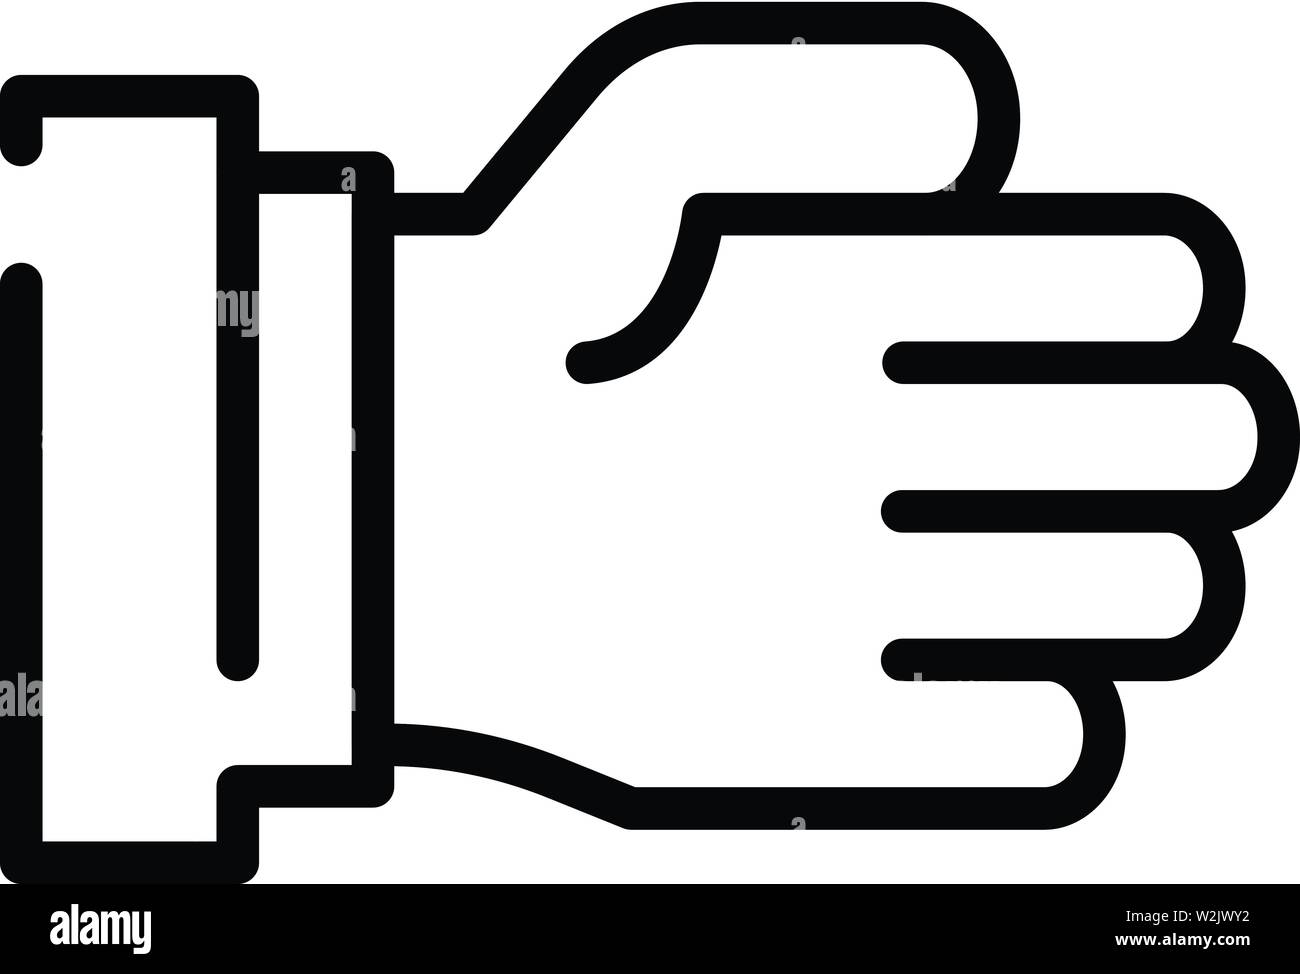 Fat hand icon, outline style - Stock Image